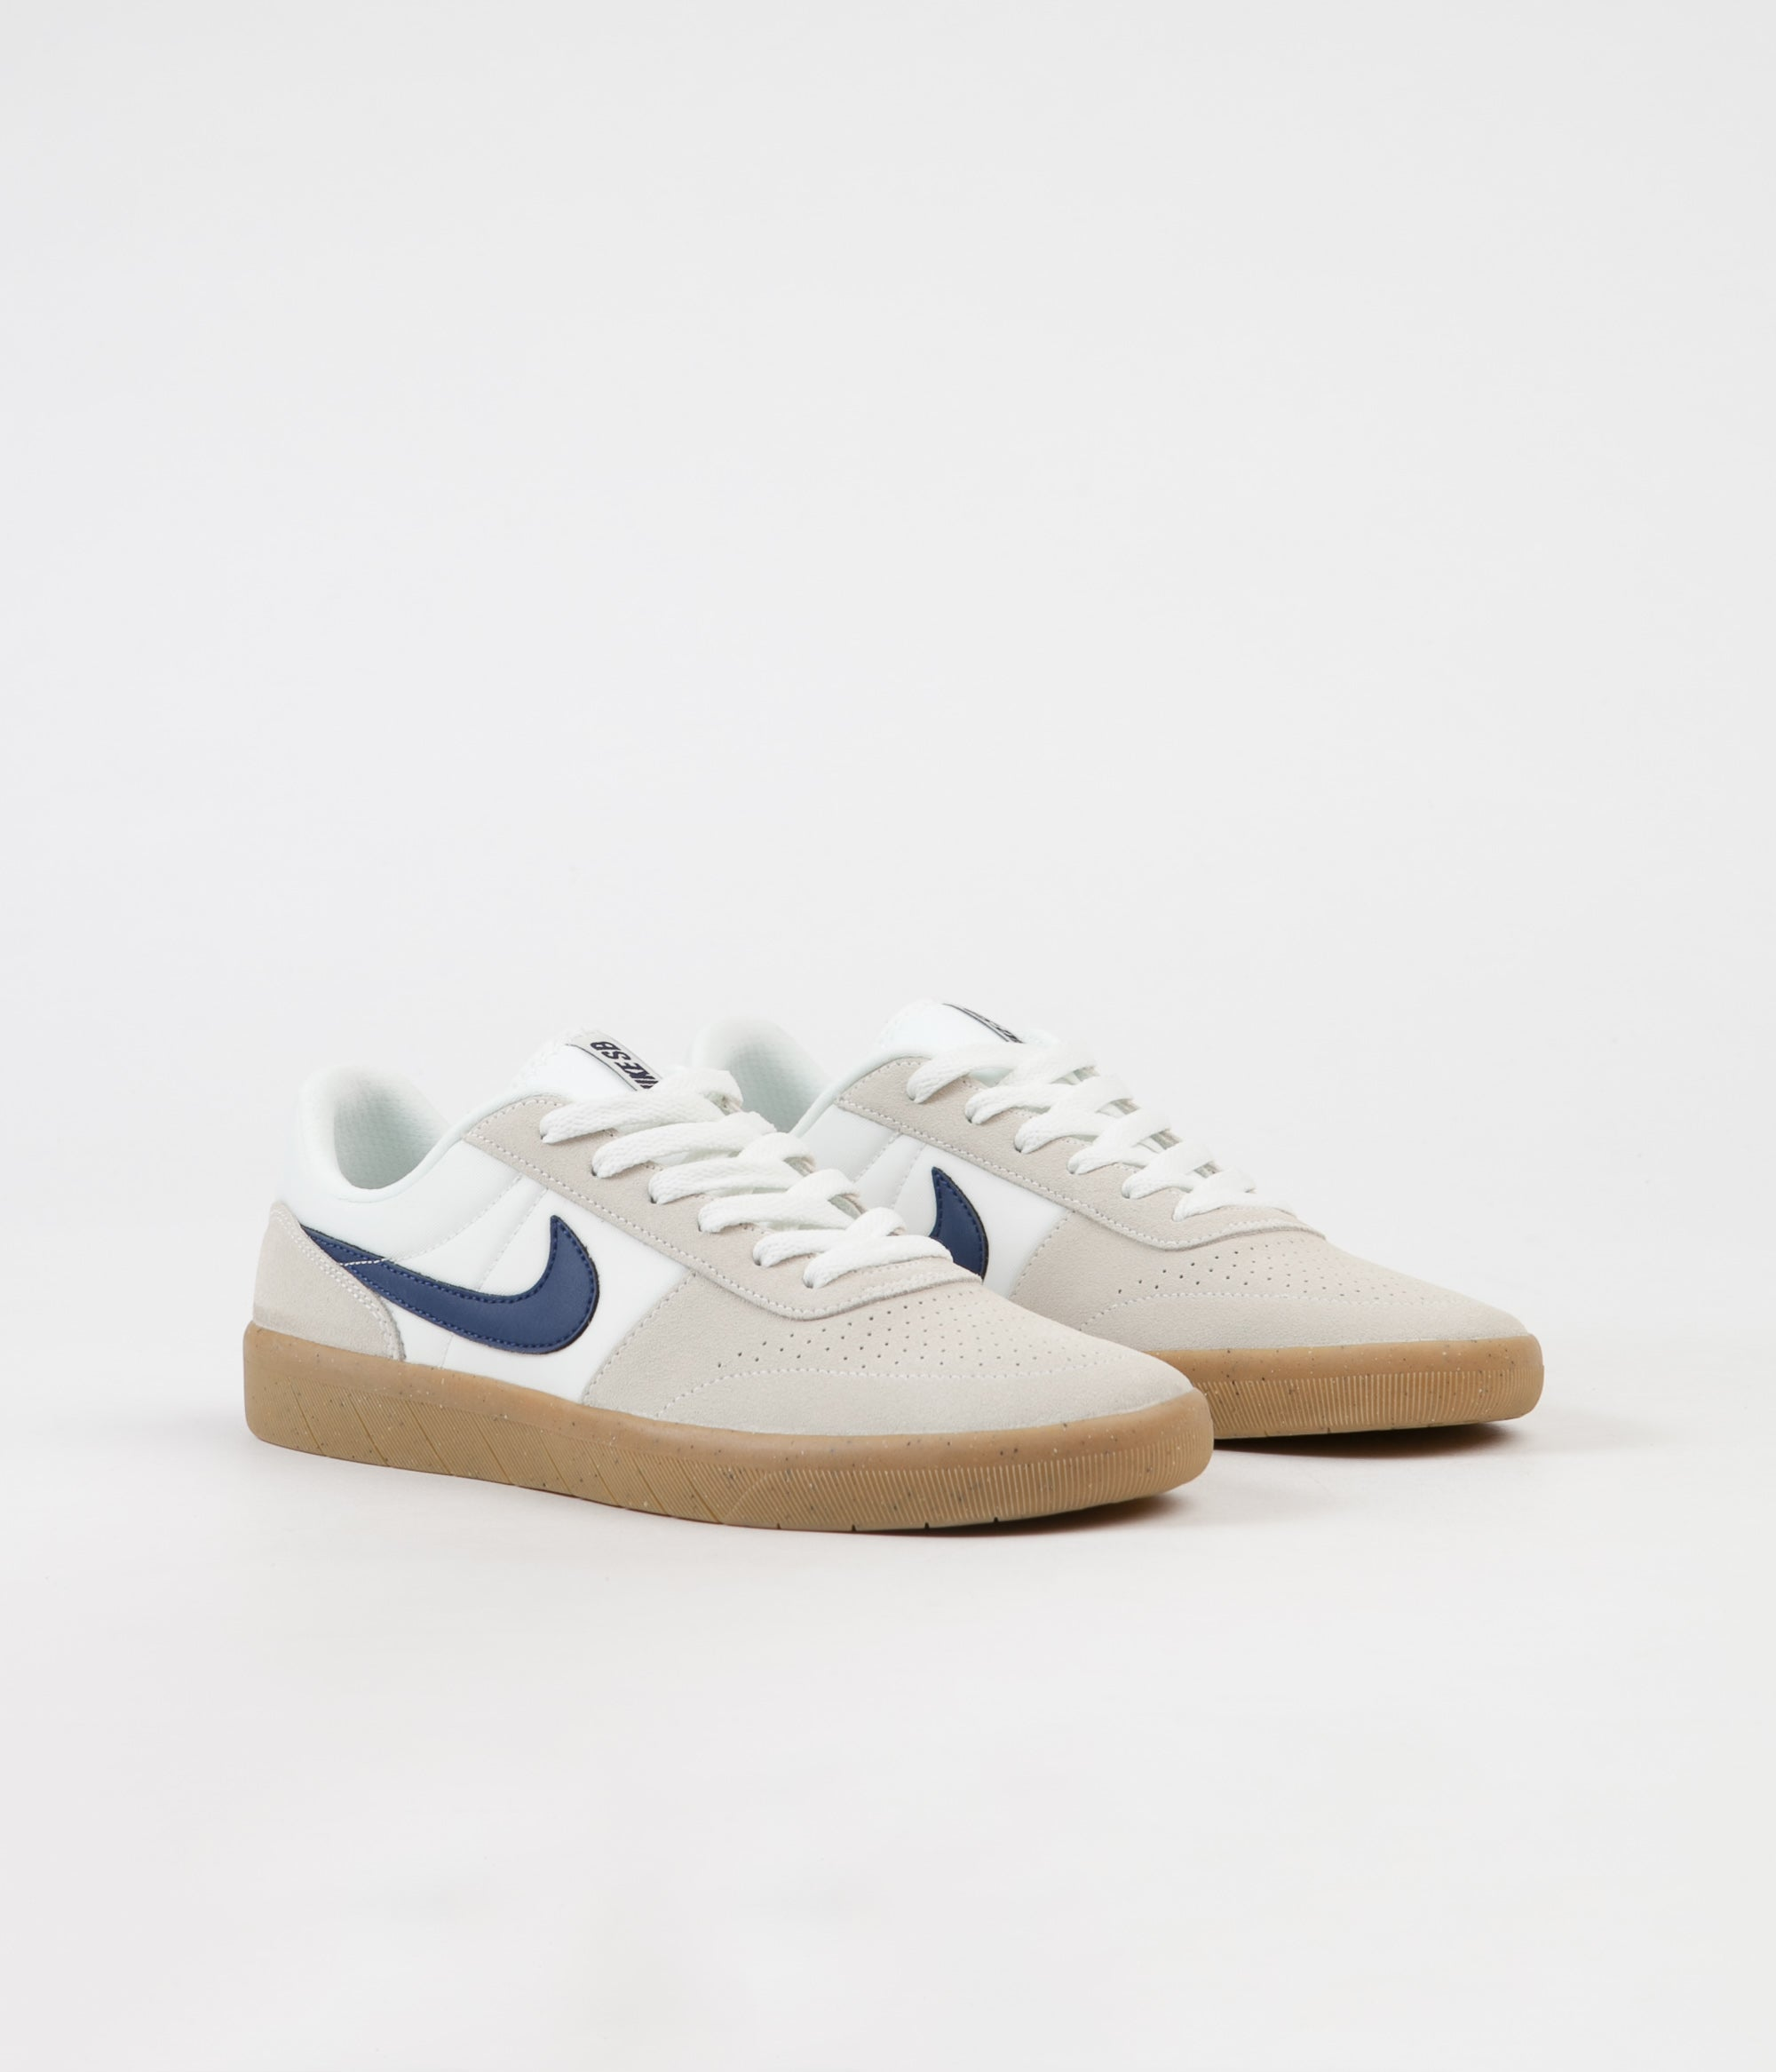 4cfdd15bc61b ... Nike SB Team Classic Shoes - Summit White   Blue Void - White ...